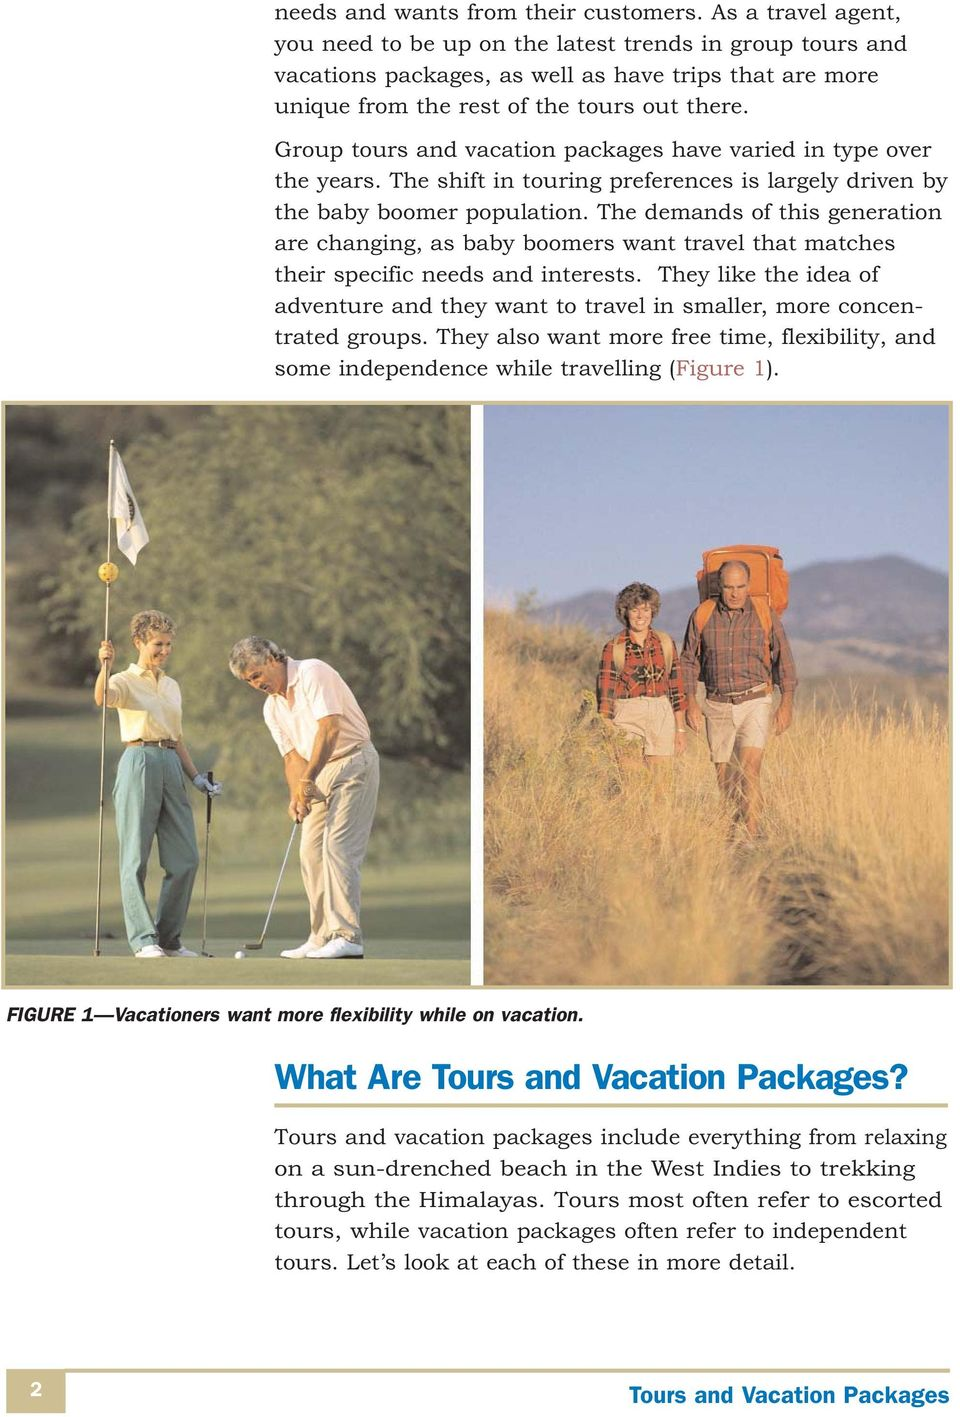 Group tours and vacation packages have varied in type over the years. The shift in touring preferences is largely driven by the baby boomer population.